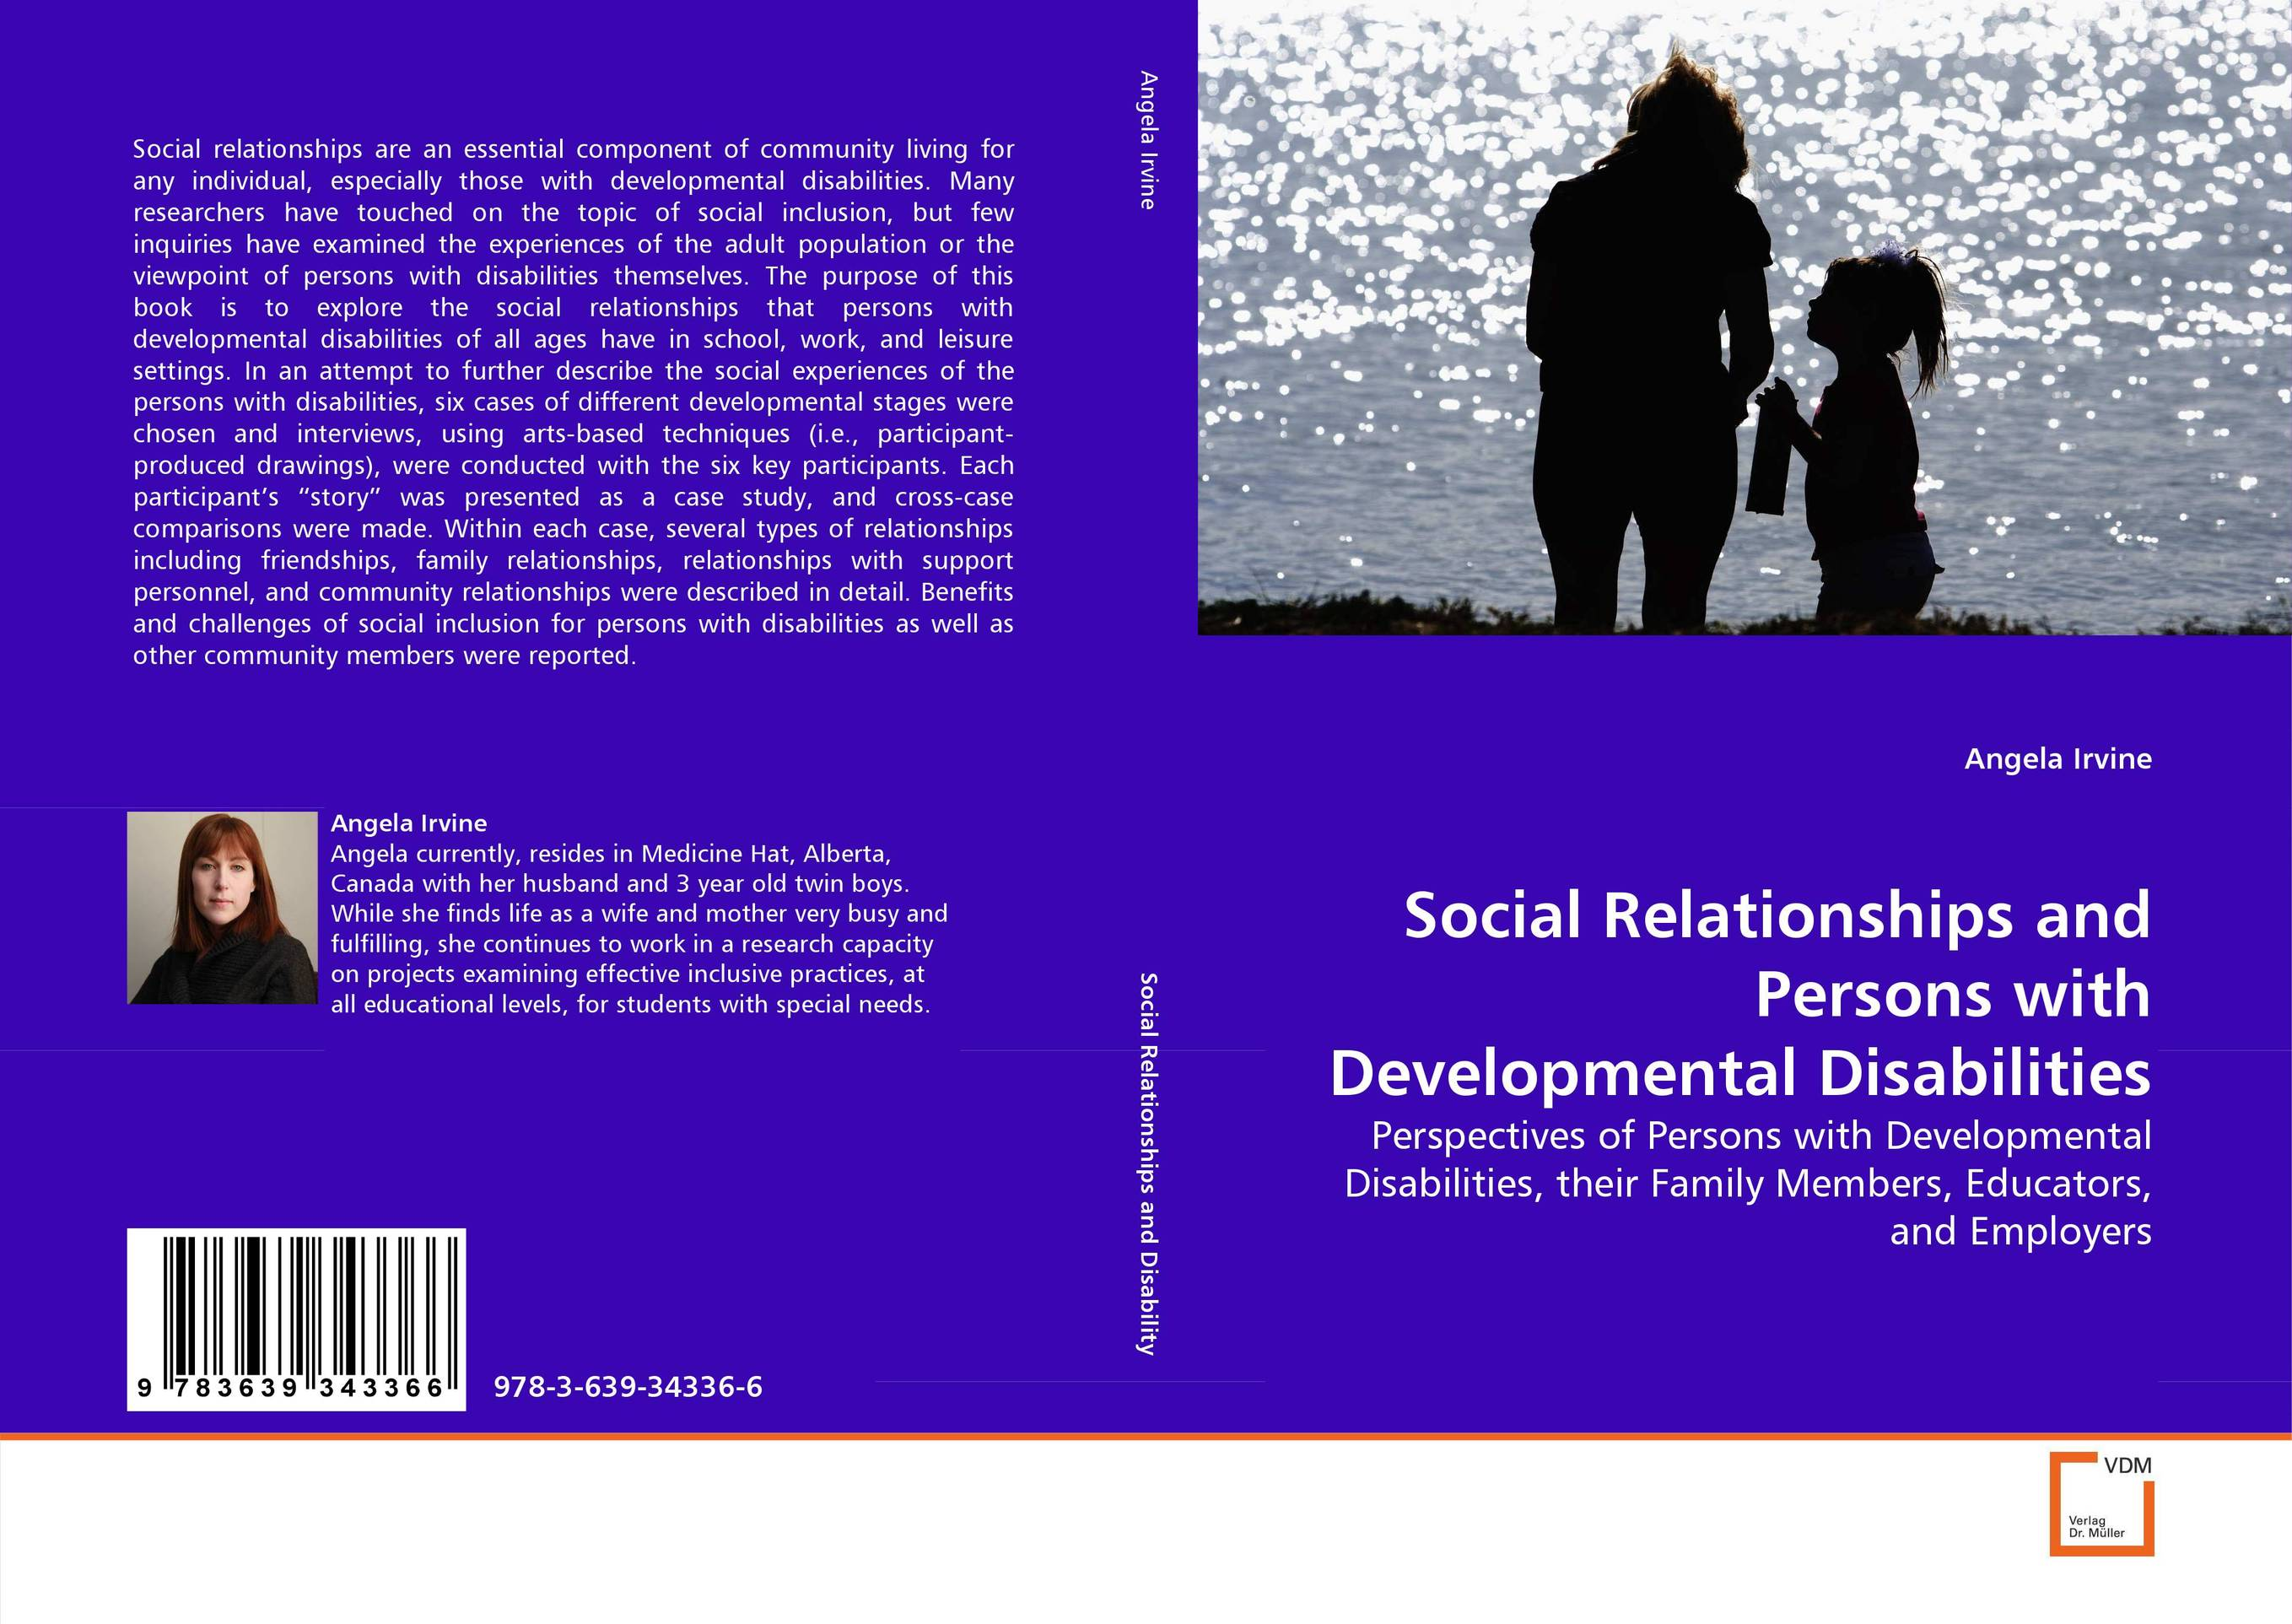 Social Relationships and Persons with Developmental Disabilities developmental disabilities from childhood to adulthood – what works for psychiatrists in community and institutional settings